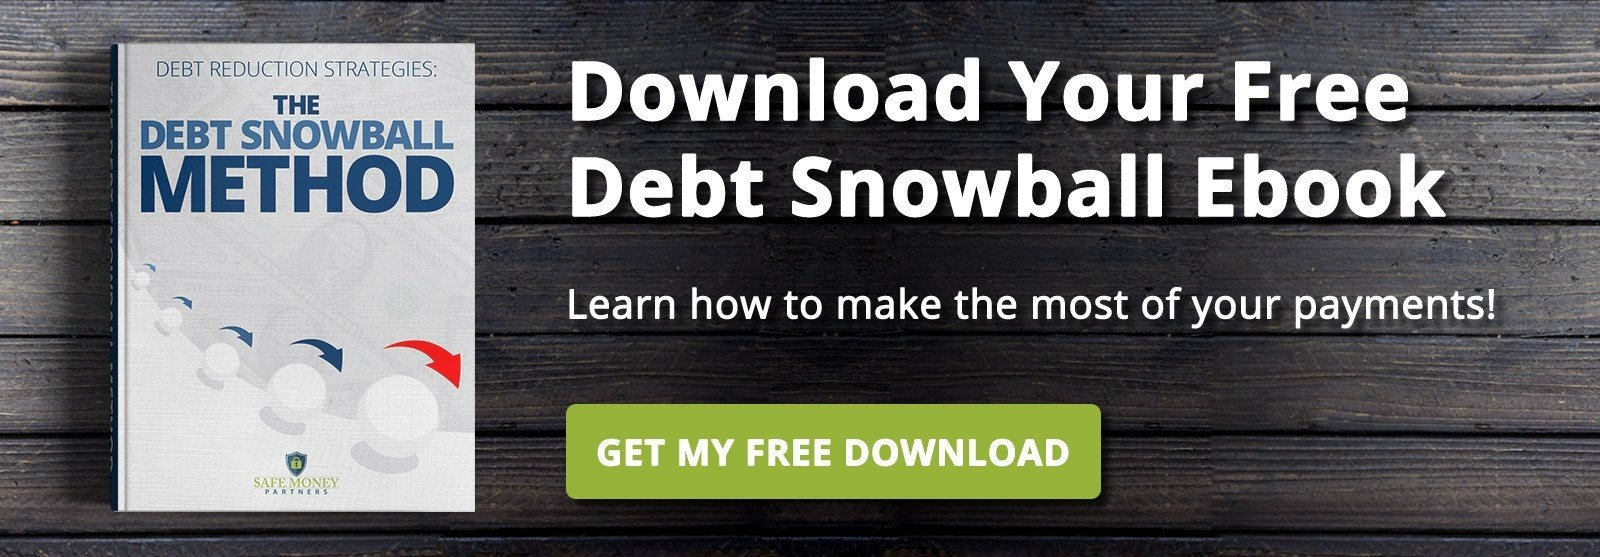 debt snowball ebook